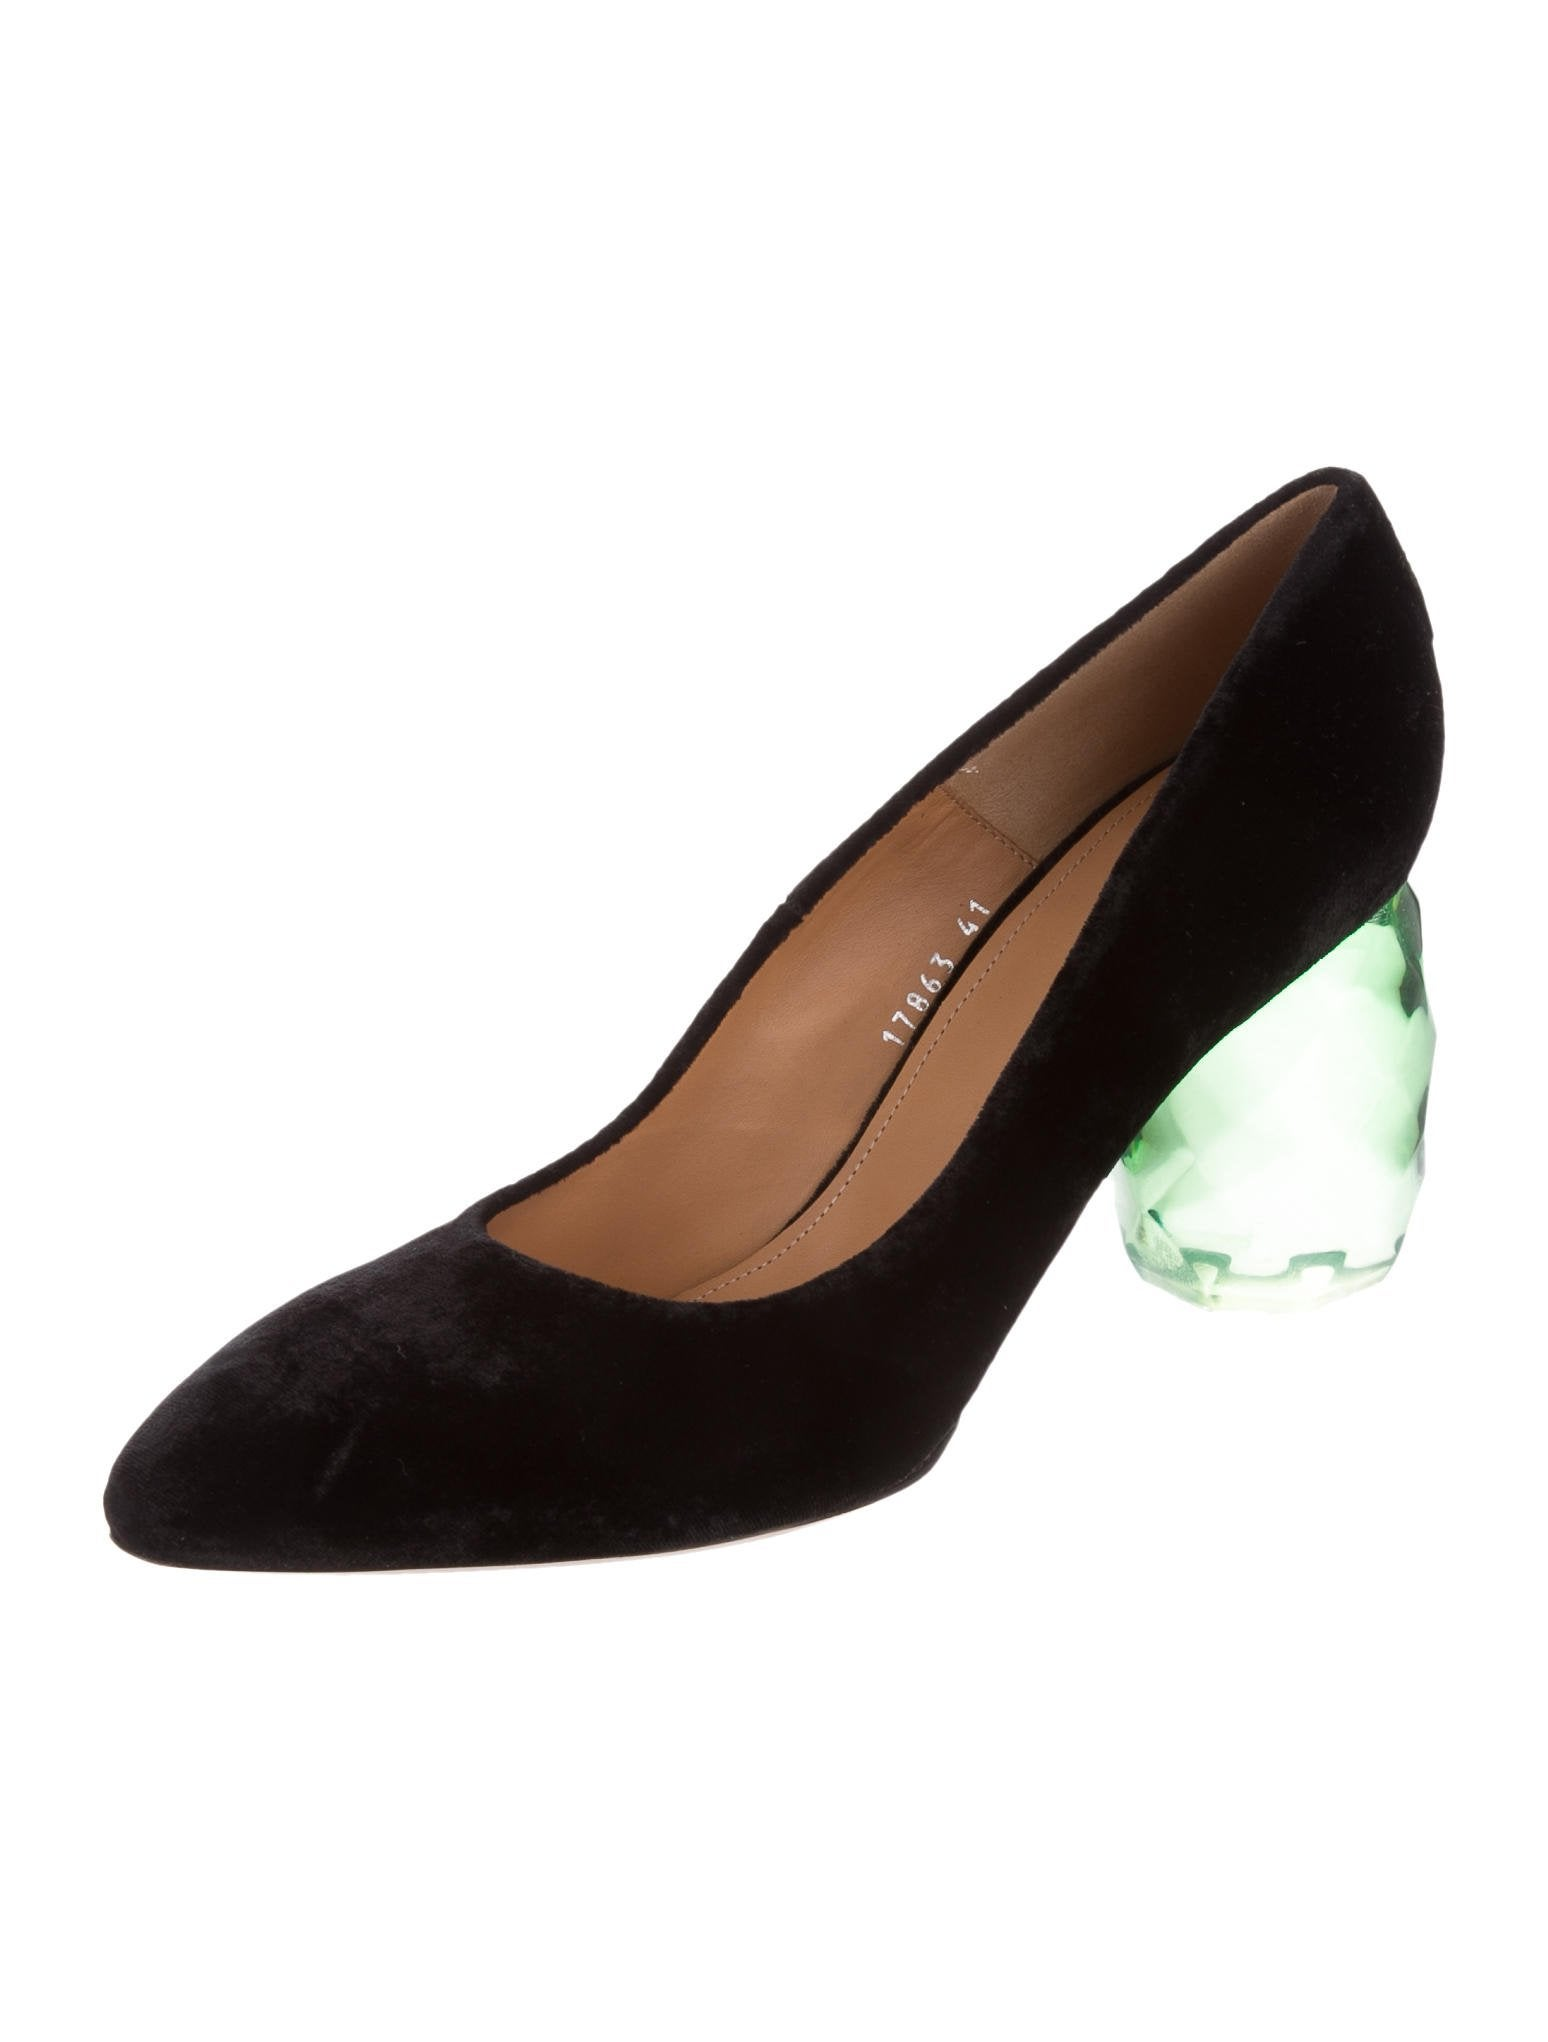 clearance best store to get free shipping deals Dries Van Noten Leather Semi Pointed-Toe Pumps 1nGsW